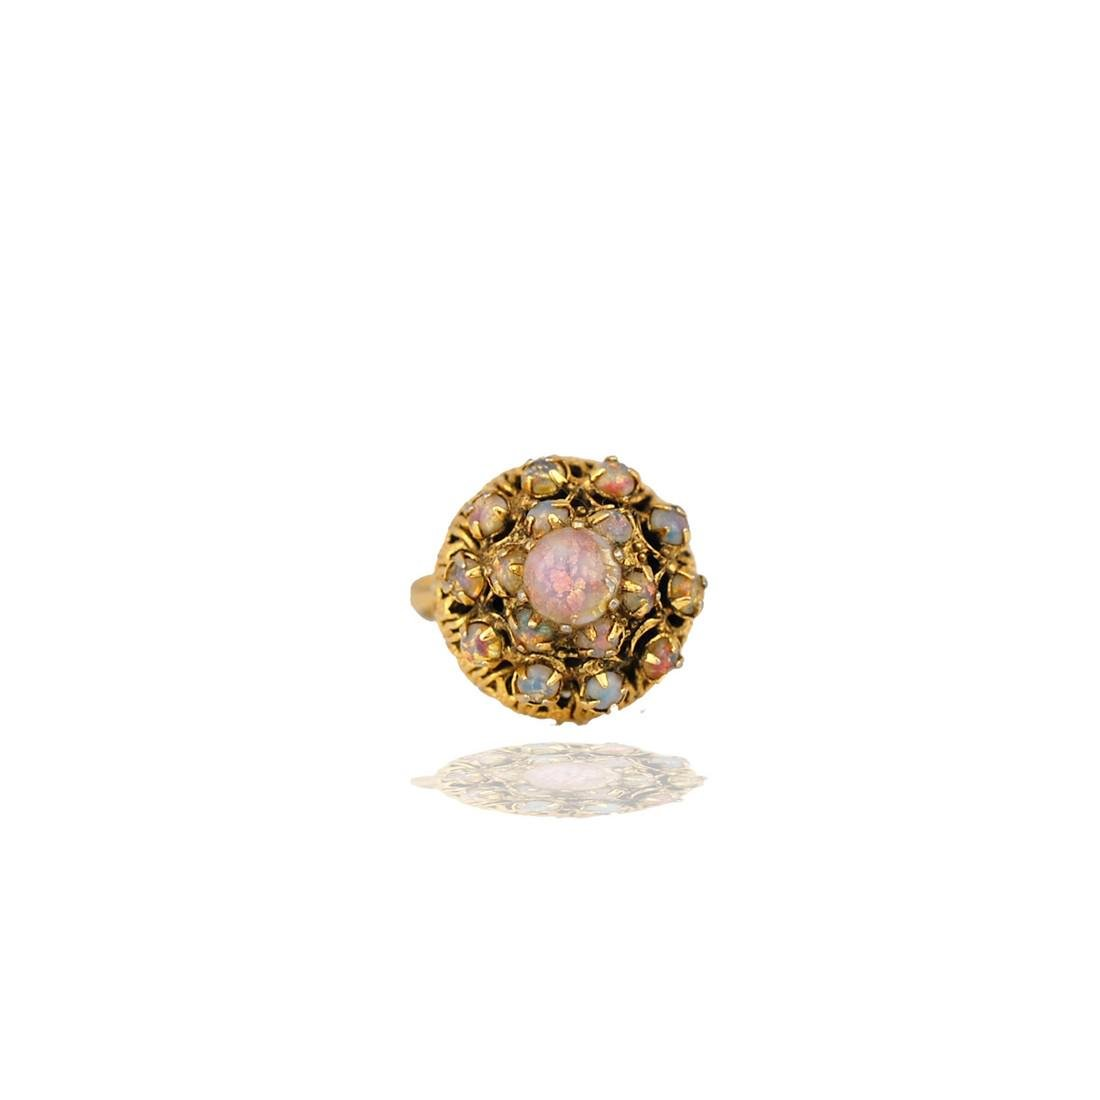 Asian, Temple Ring, Opals set in Ornate Hand-Made